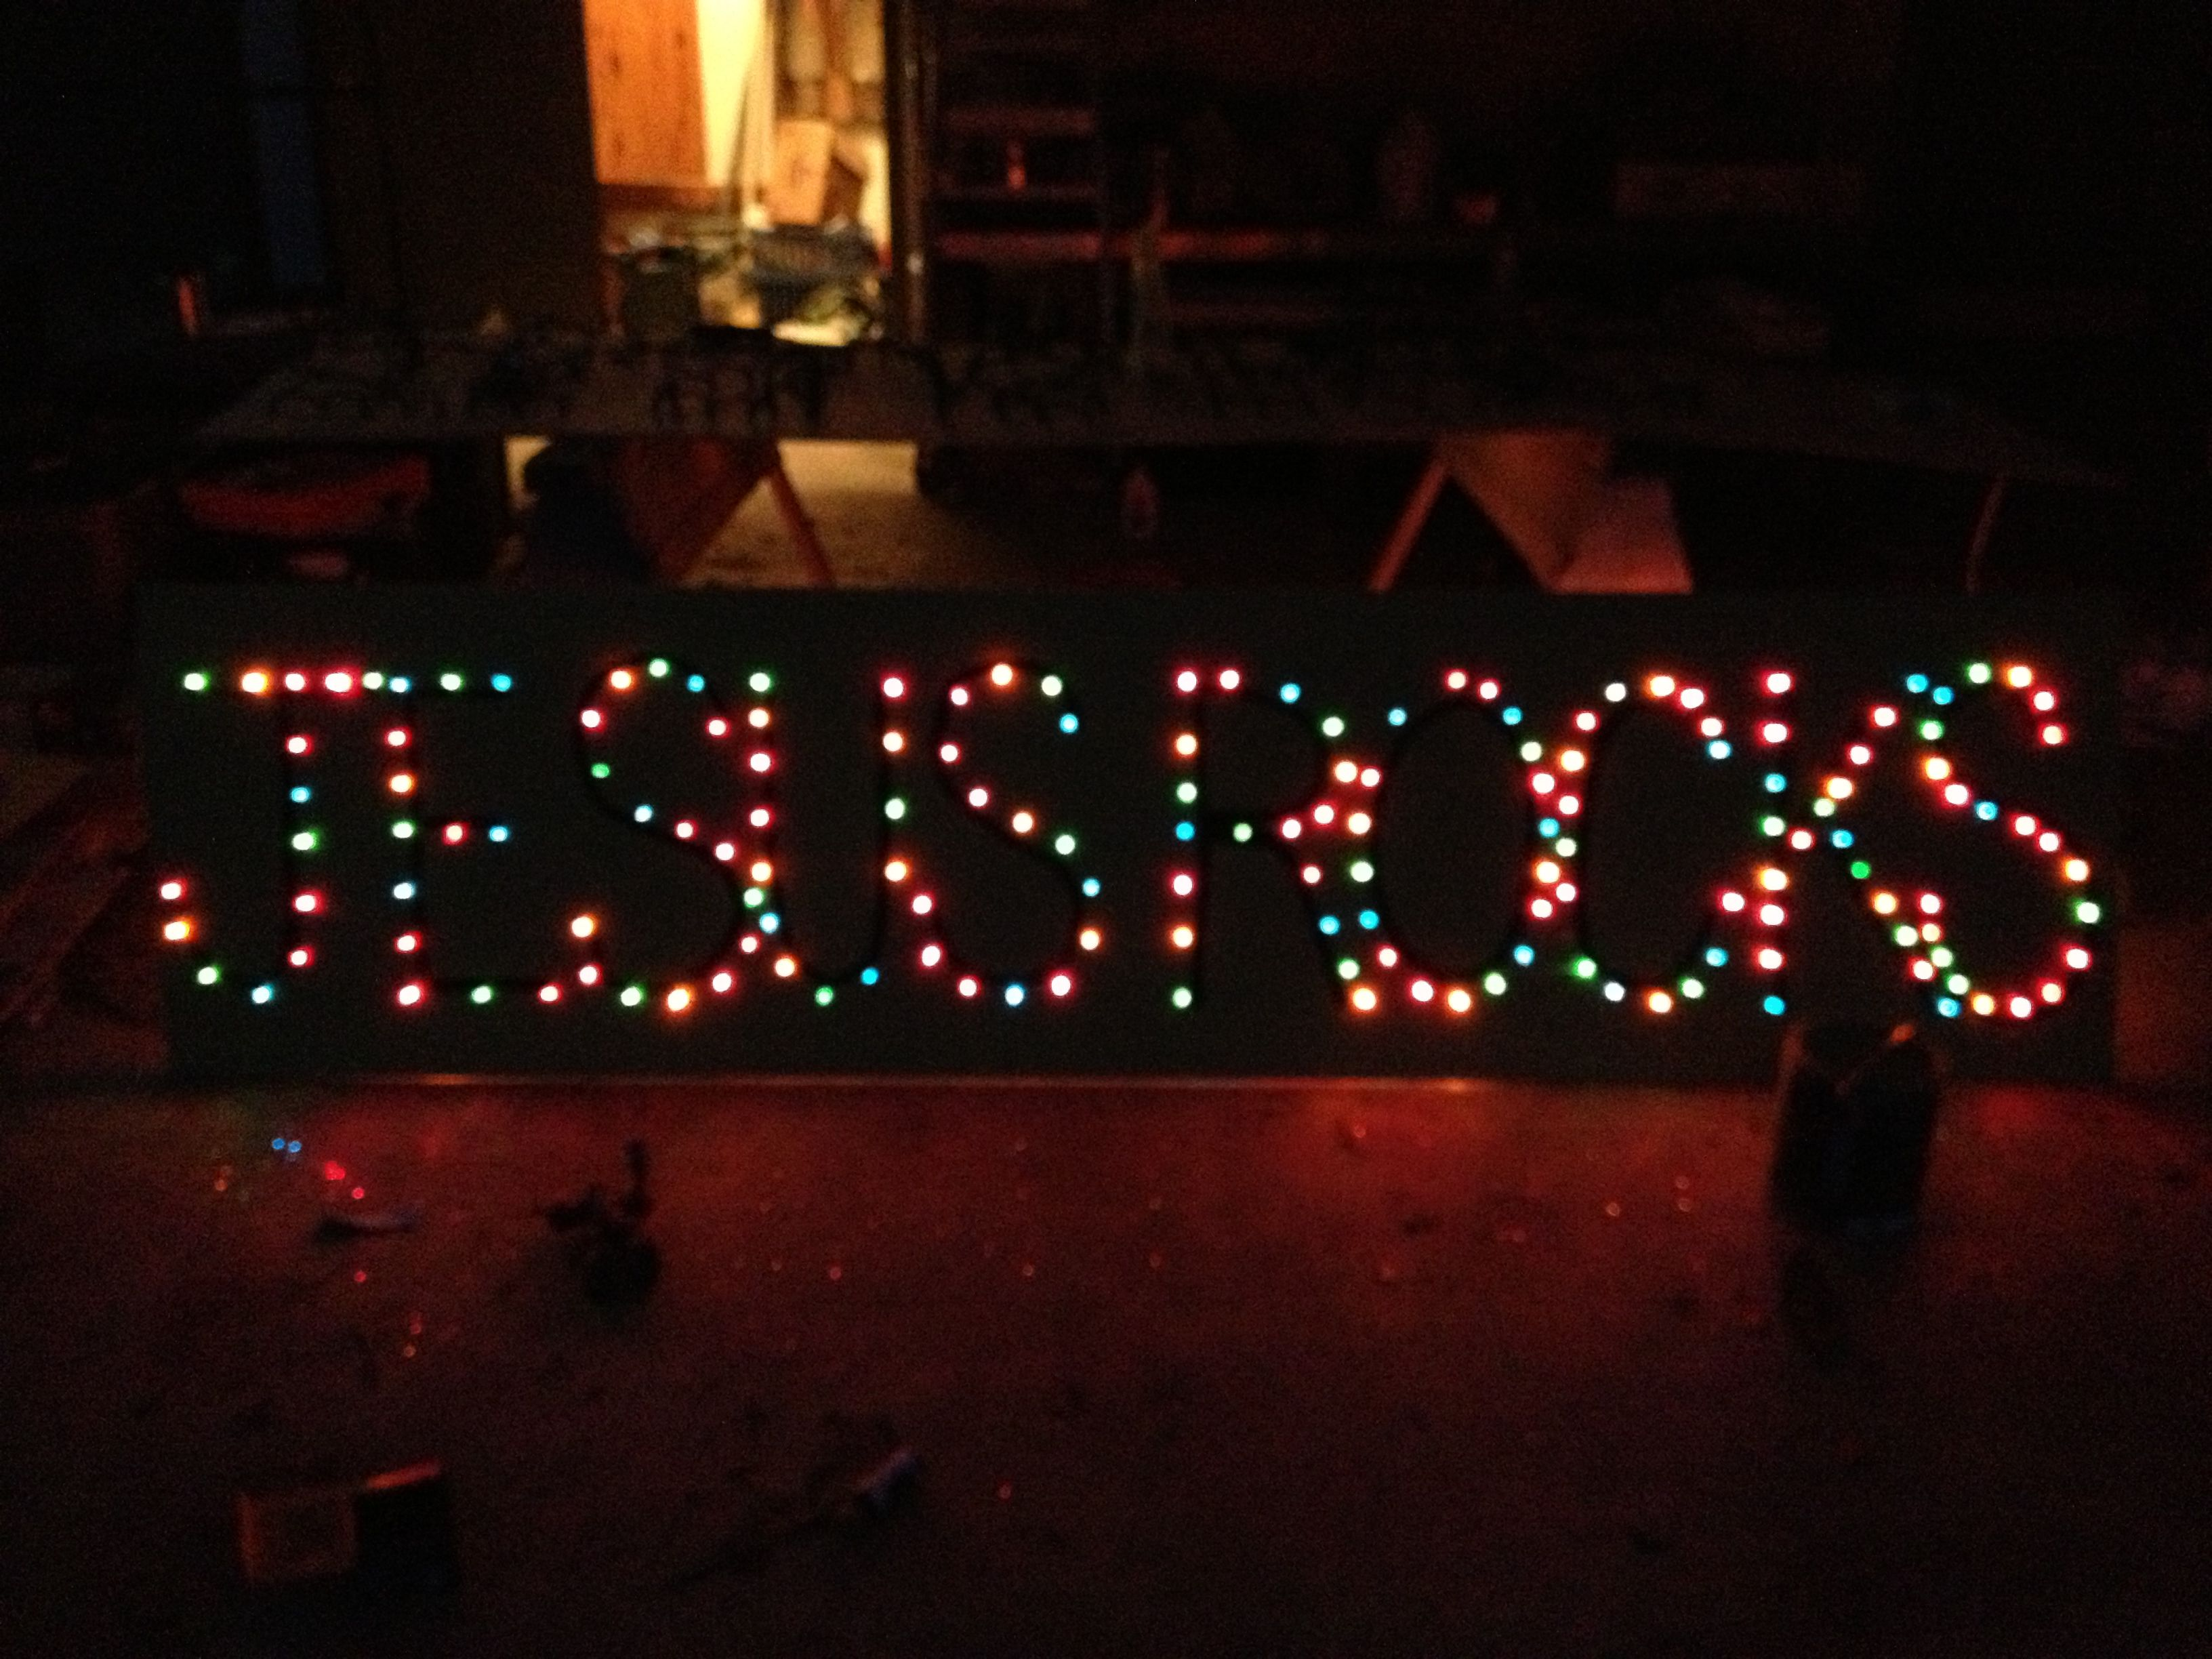 Christmas festival ideas for church - For The Parade Float What About 50 S Rock N Roll Theme Christmas Float Ideaschristmas